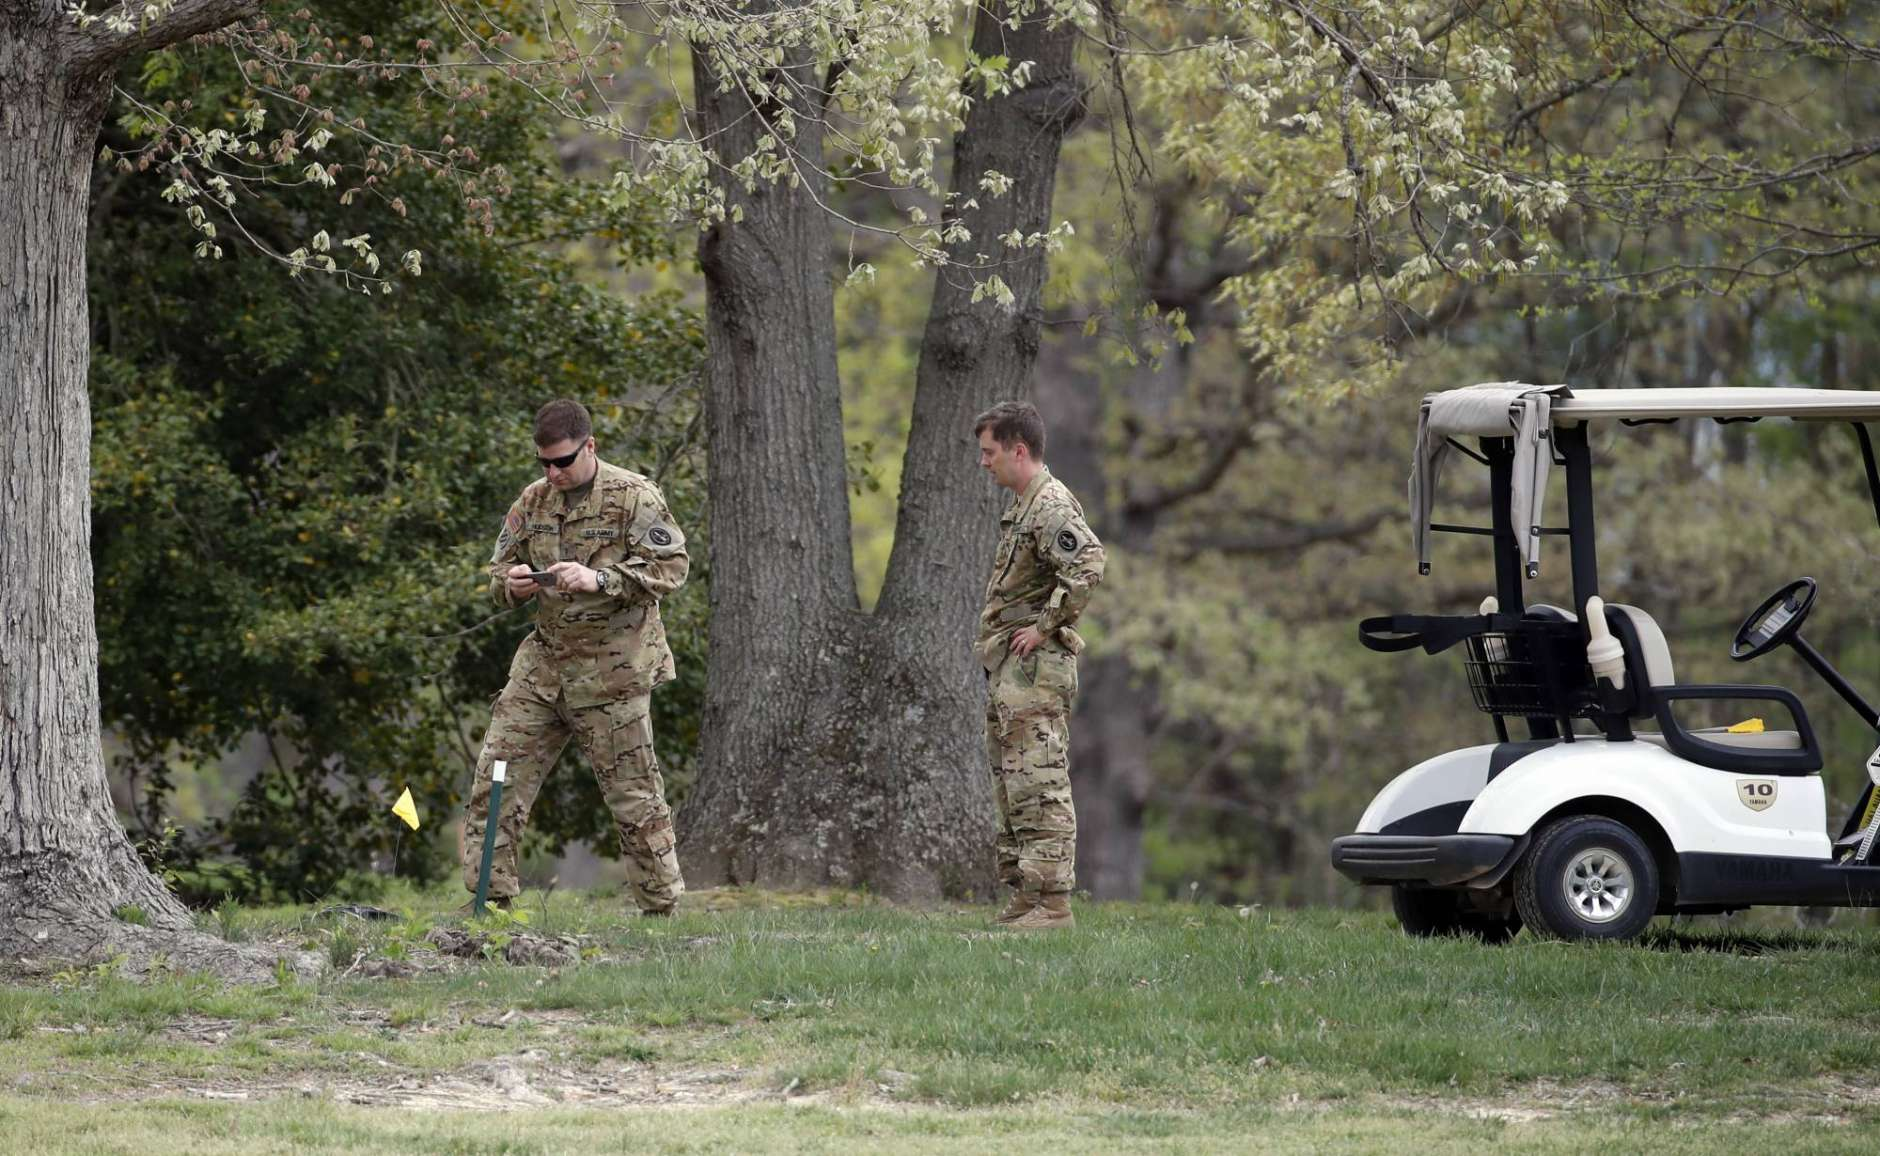 Investigators examine debris that fell on the Breton Bay Golf and Country Club golf course after an Army UH-60 helicopter from Fort Belvoir, Va., crashed, Monday, April 17, 2017, in Leonardtown, Md. (AP Photo/Alex Brandon)